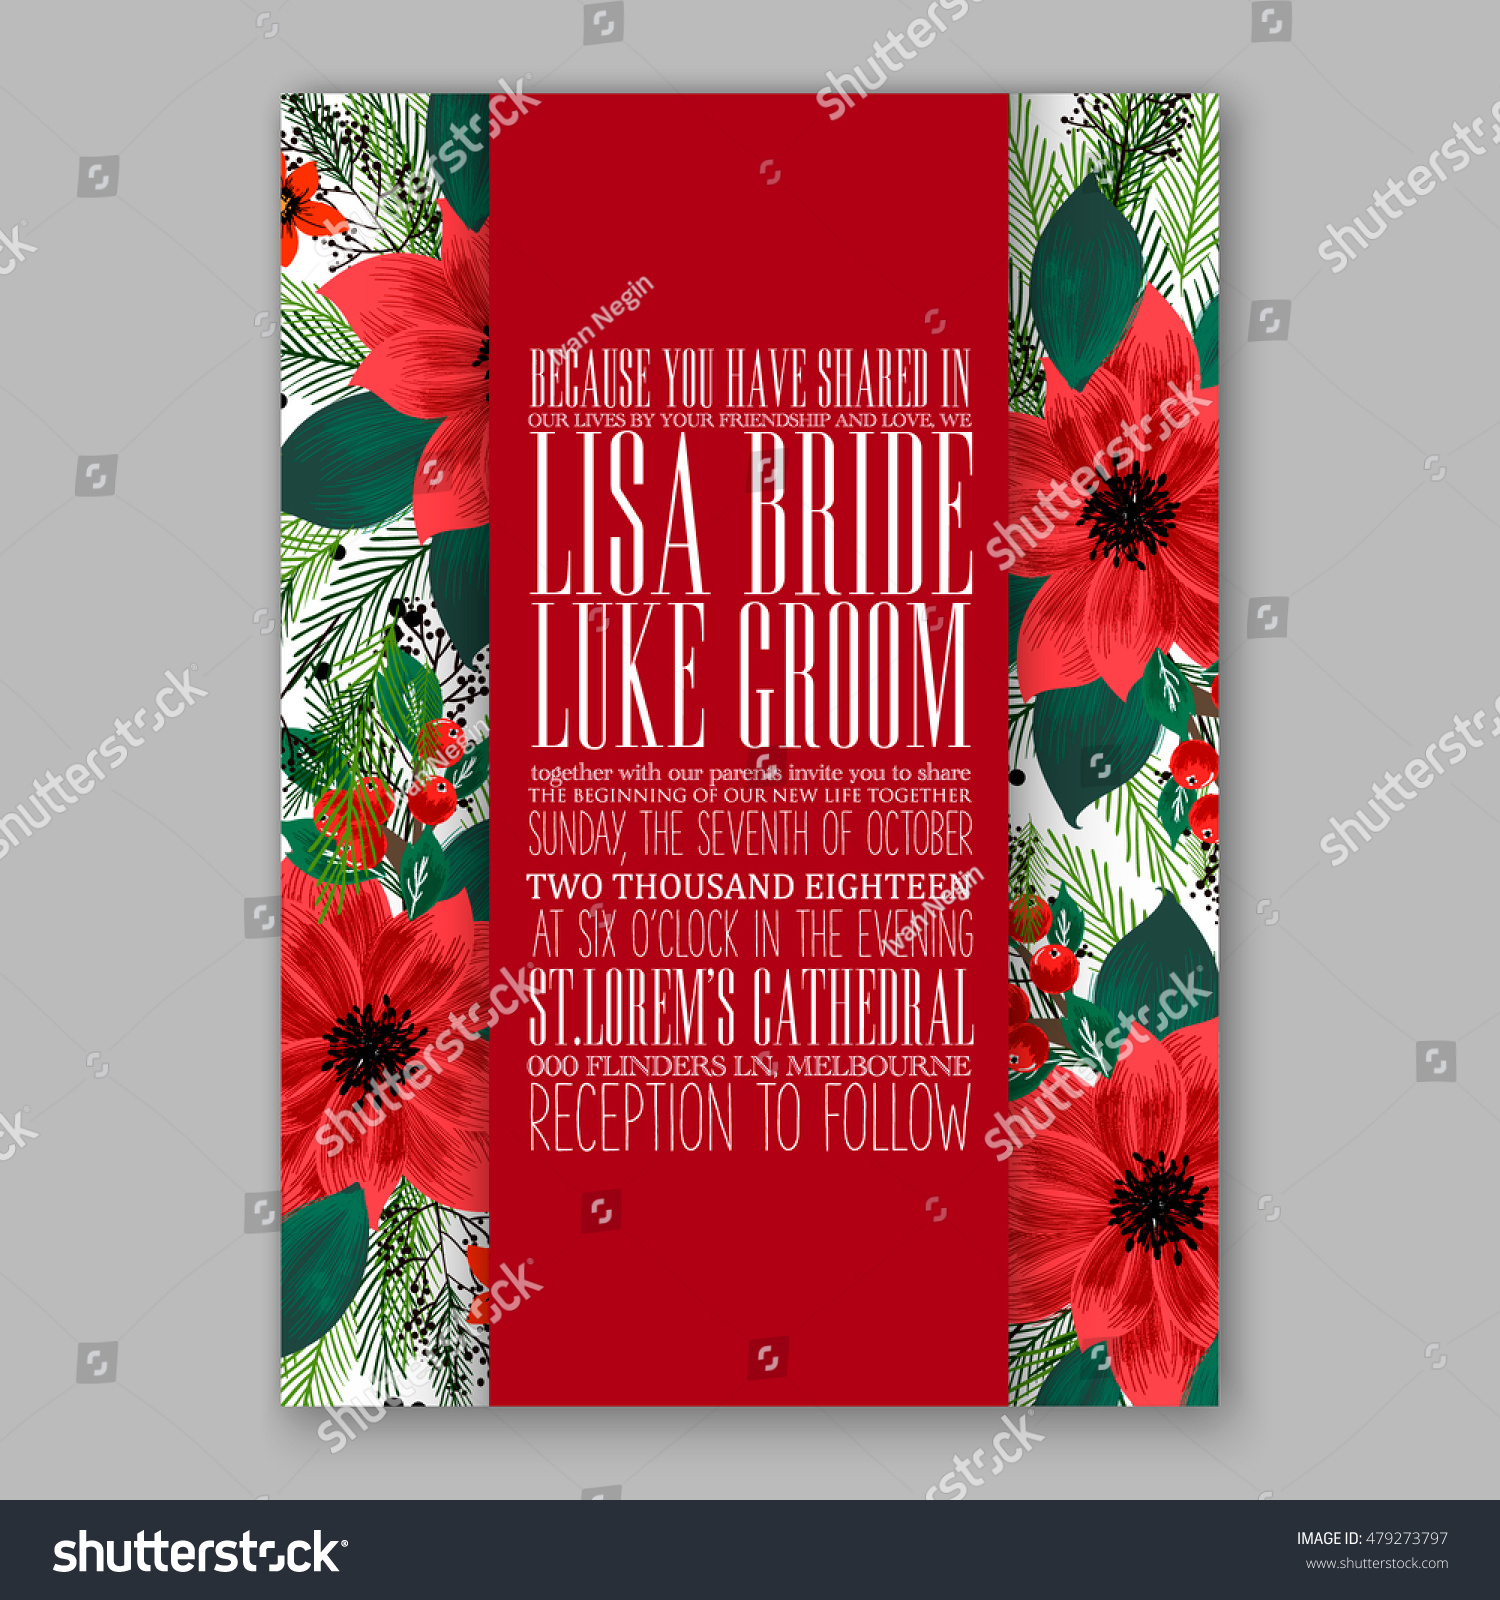 epic christmas party invitations ideas with combined green and